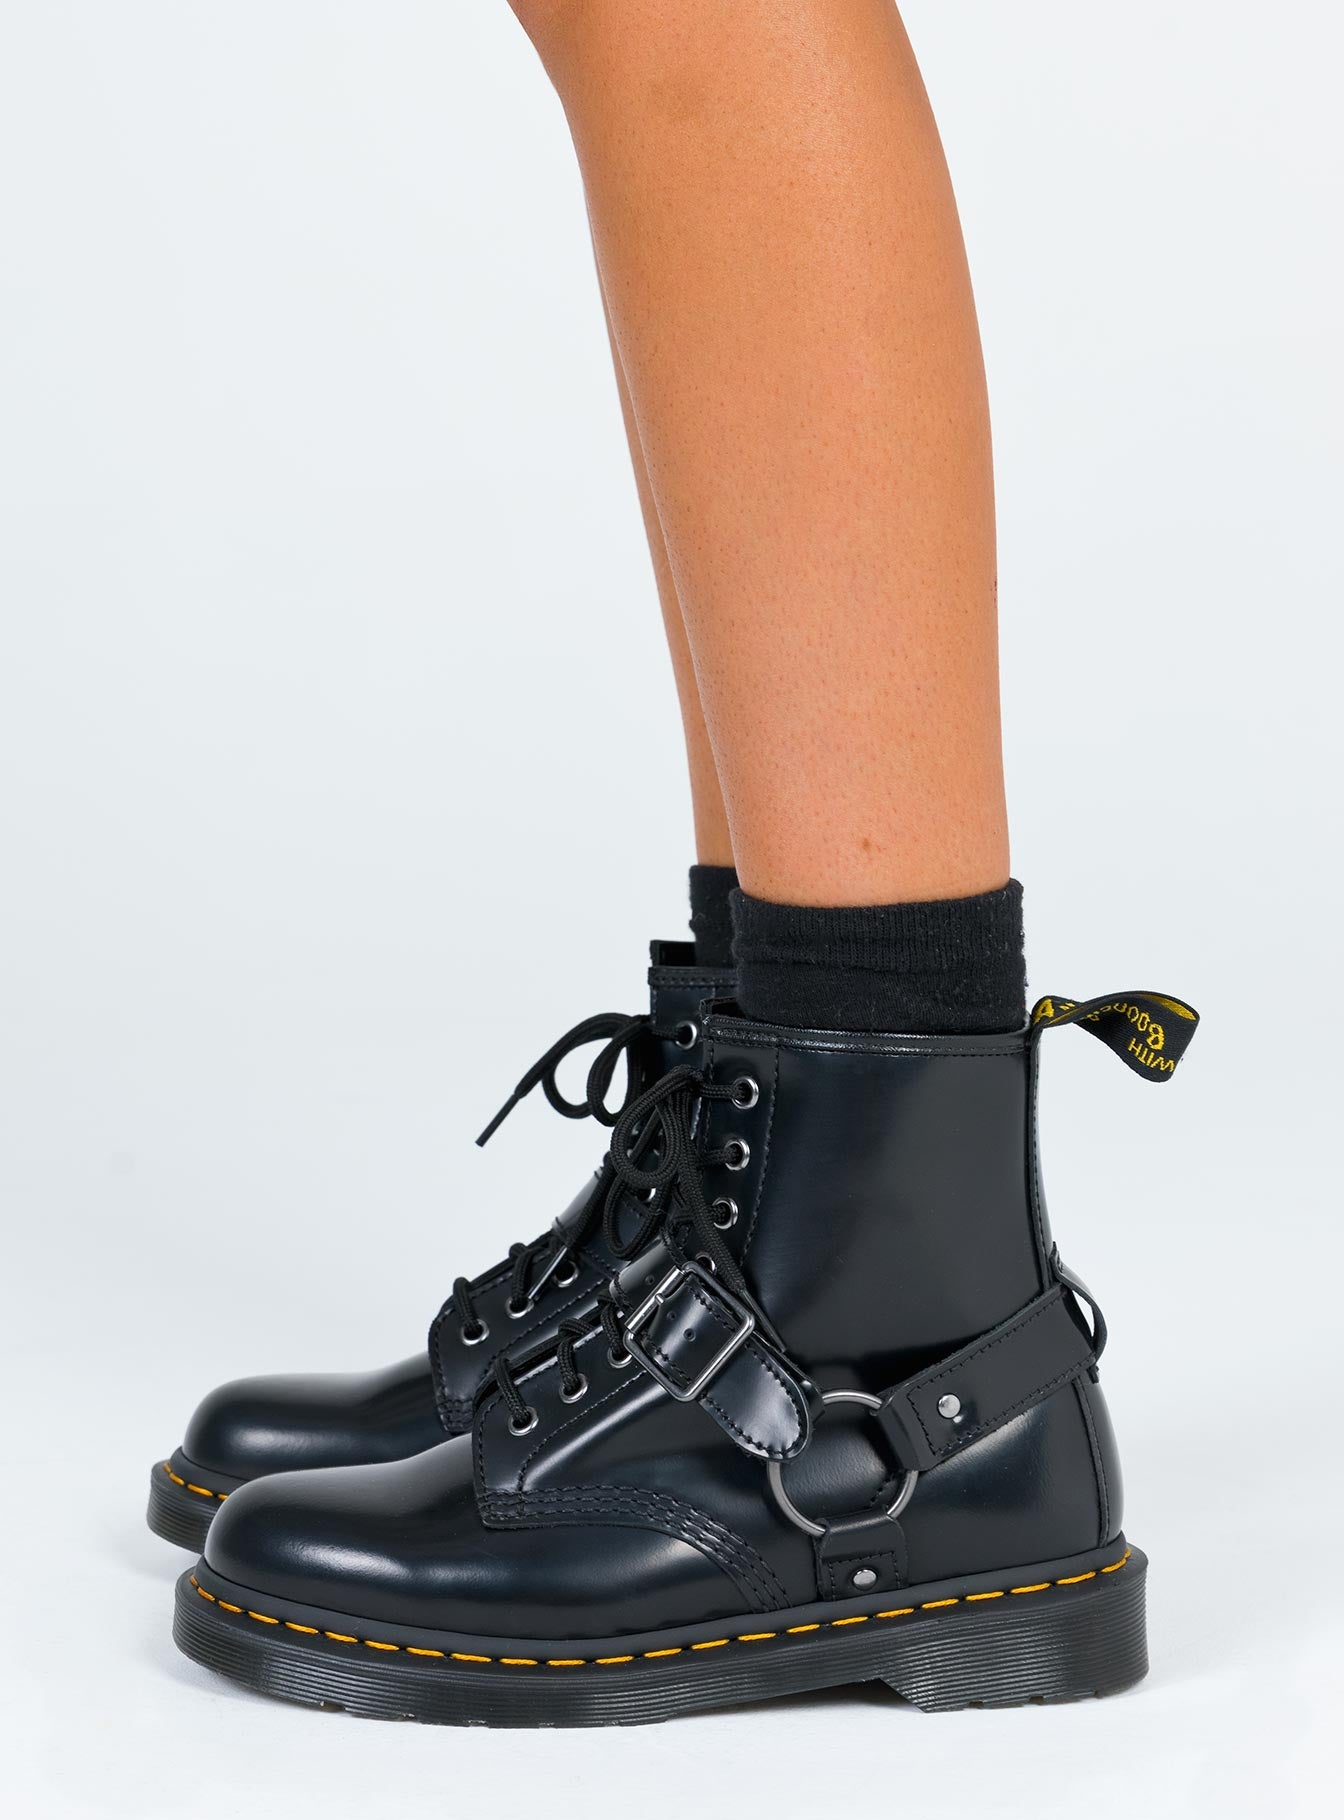 Dr. Martens 1460 Harness 8 Eye Boot Black – Princess Polly AUS